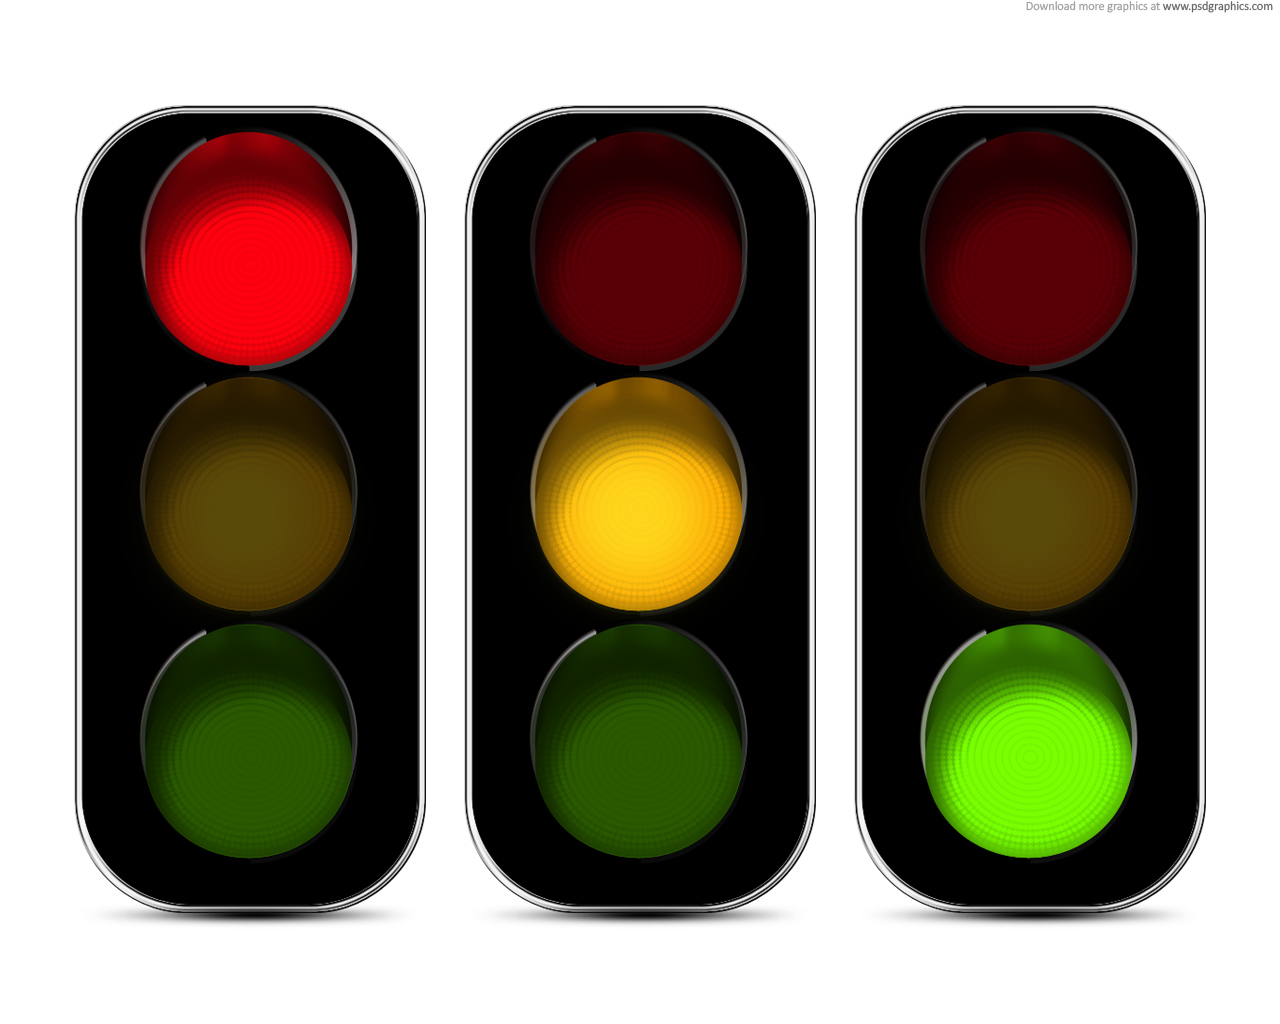 13 Traffic Light Icon Images